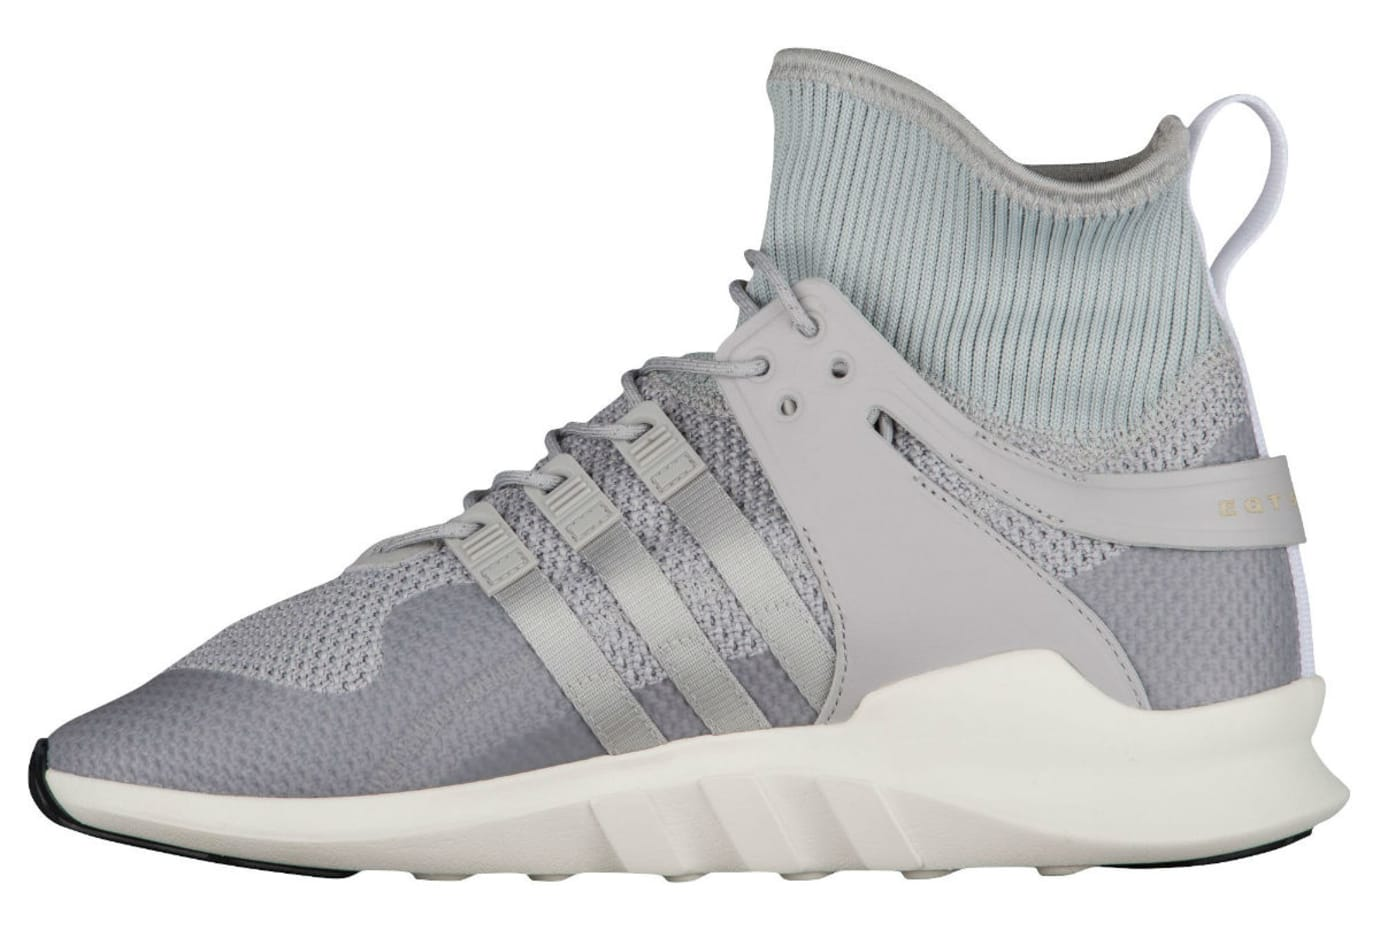 Adidas EQT Support ADV Winter Grey Two White Release Date Medial